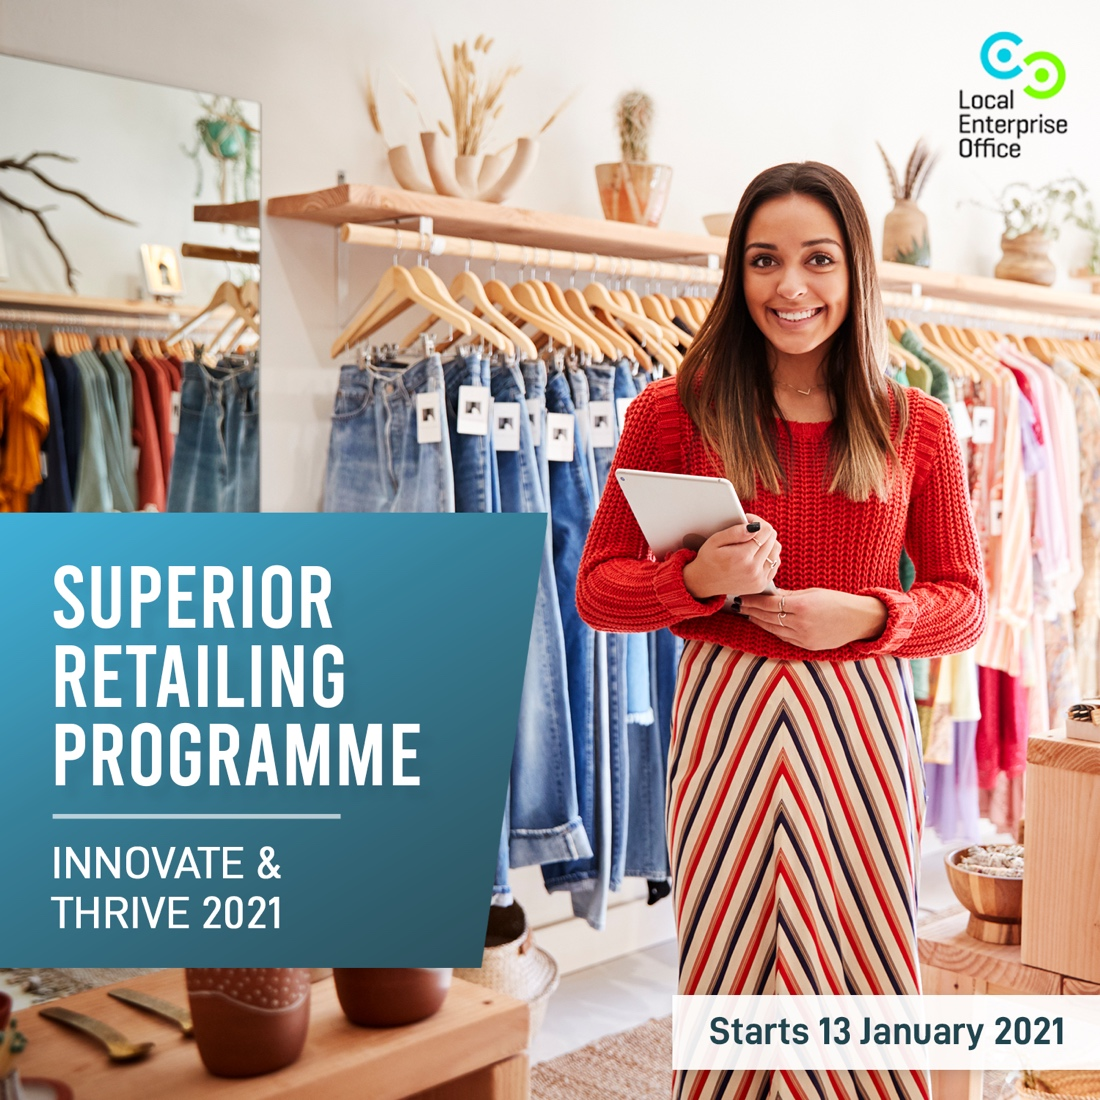 SUPERIOR RETAILING PROGRAMME